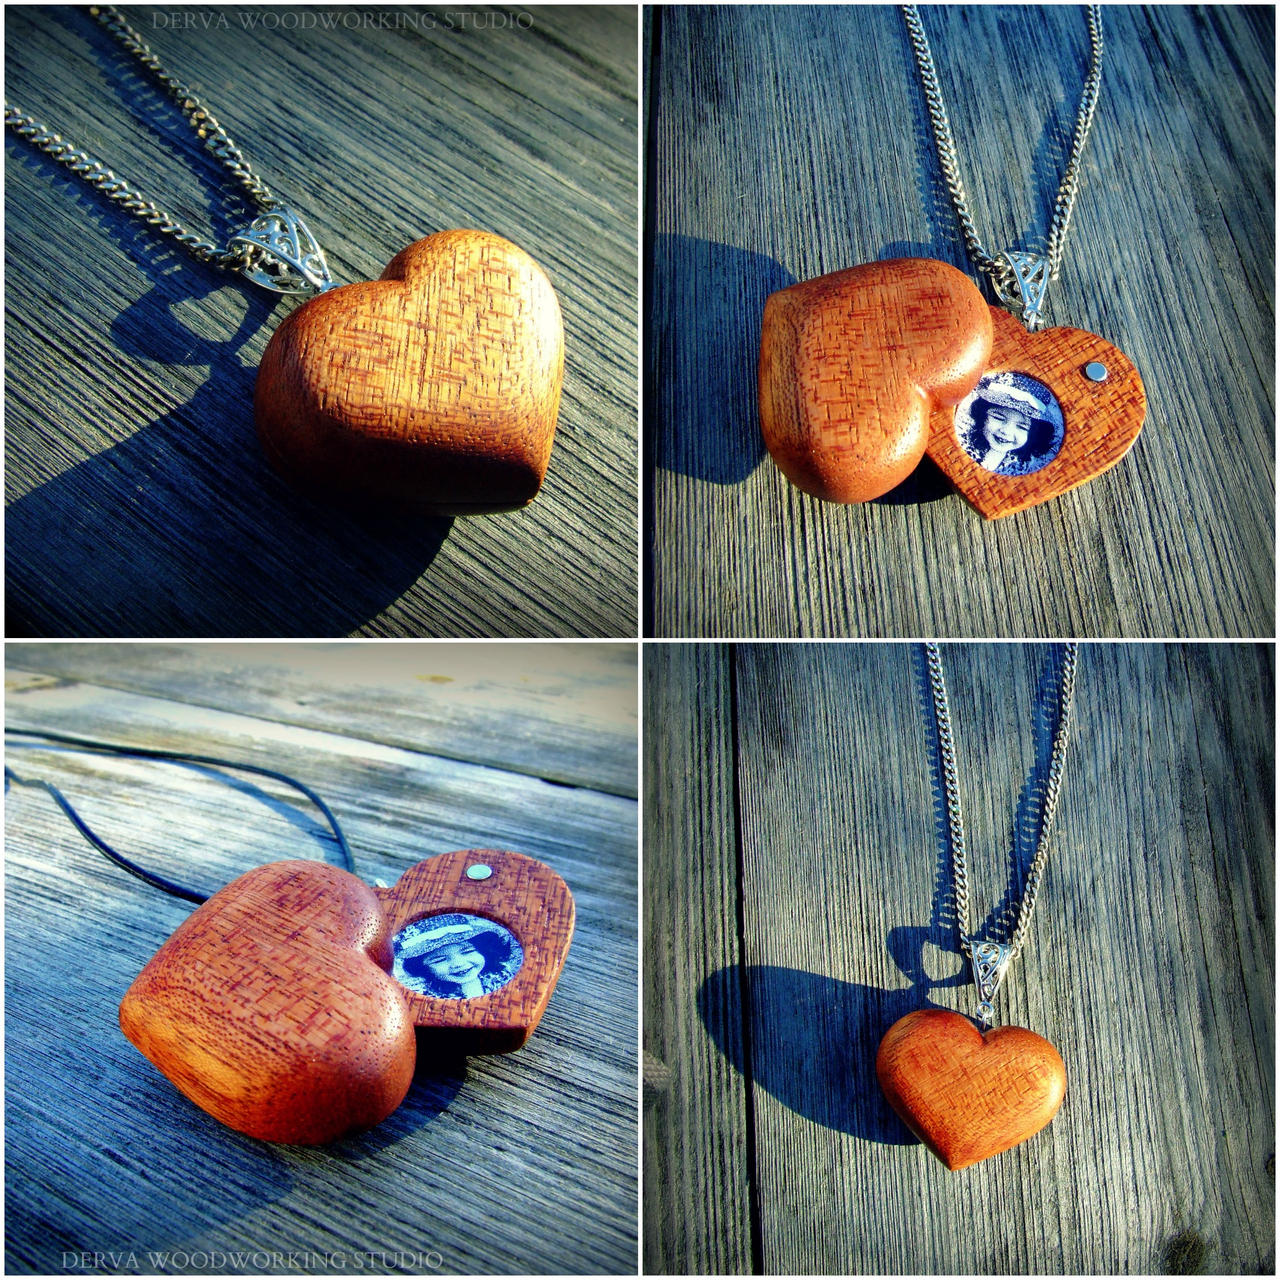 Wooden heart locket pendant by derva studio on deviantart wooden heart locket pendant by derva studio aloadofball Gallery